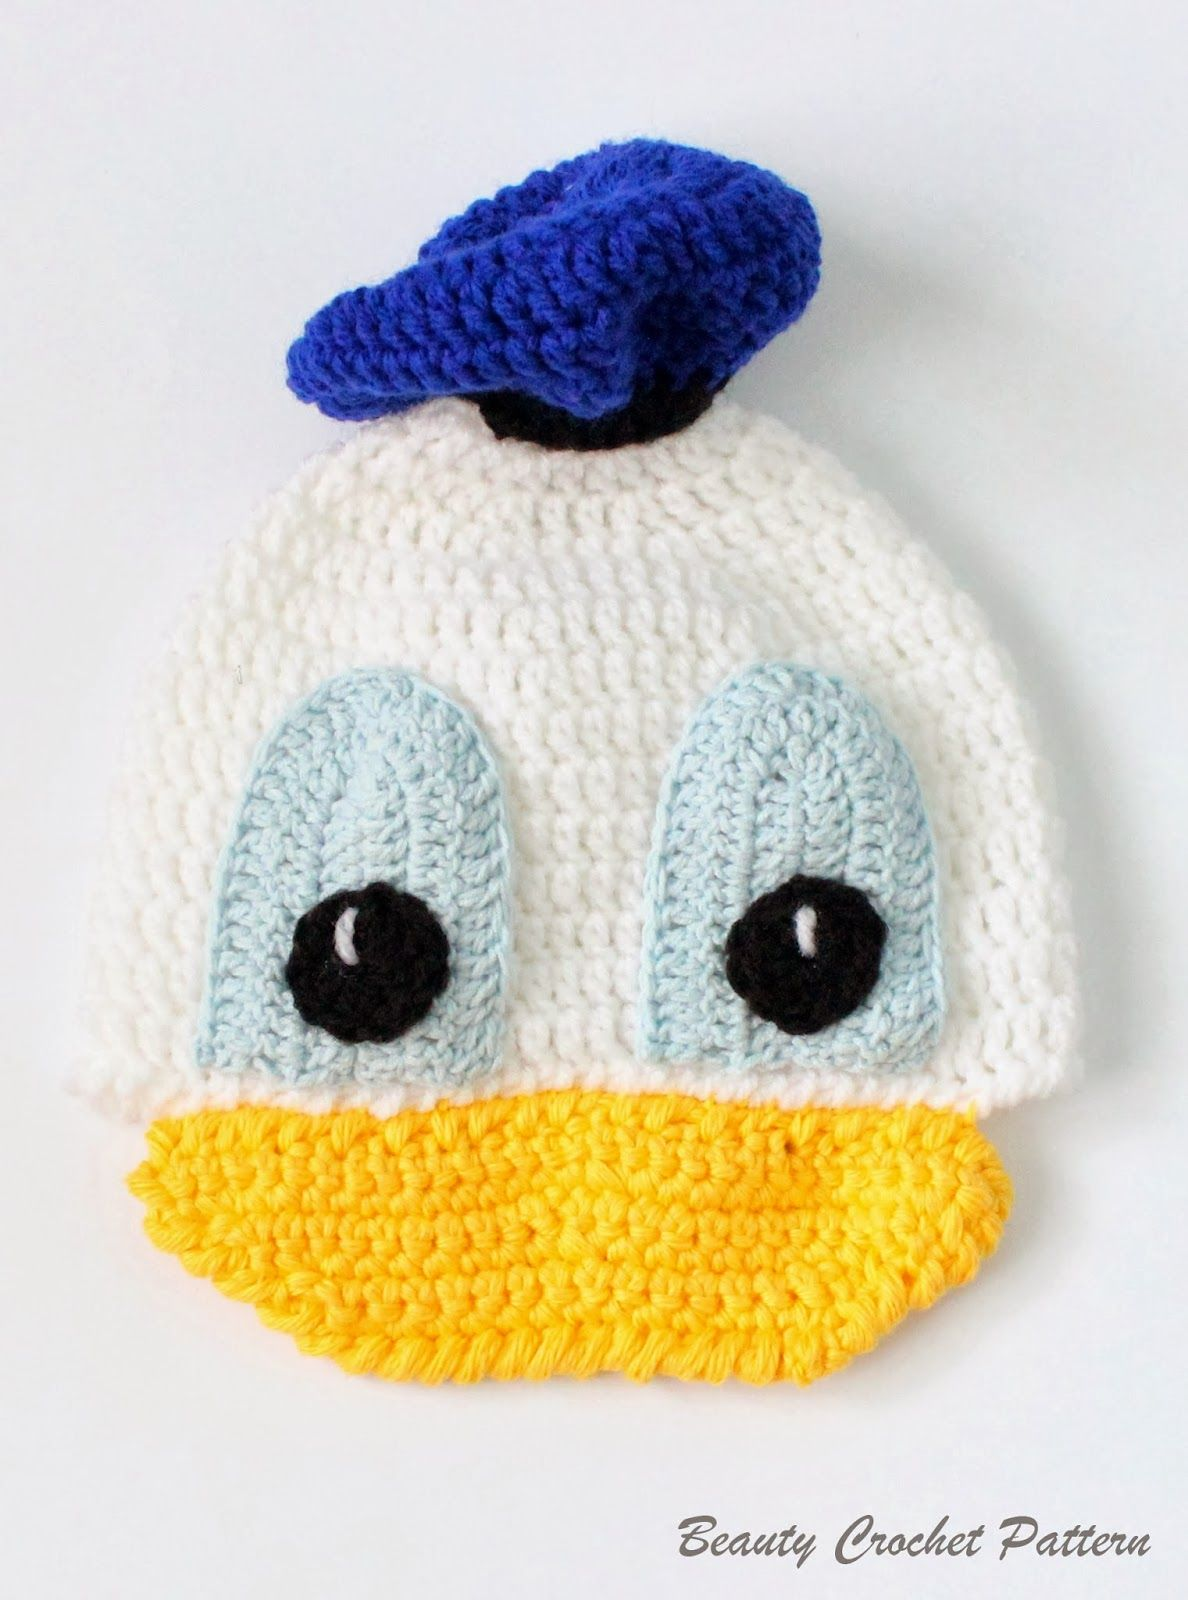 Donald Crochet Hat Pattern by Beauty Crochet Pattern | Muñecos ...